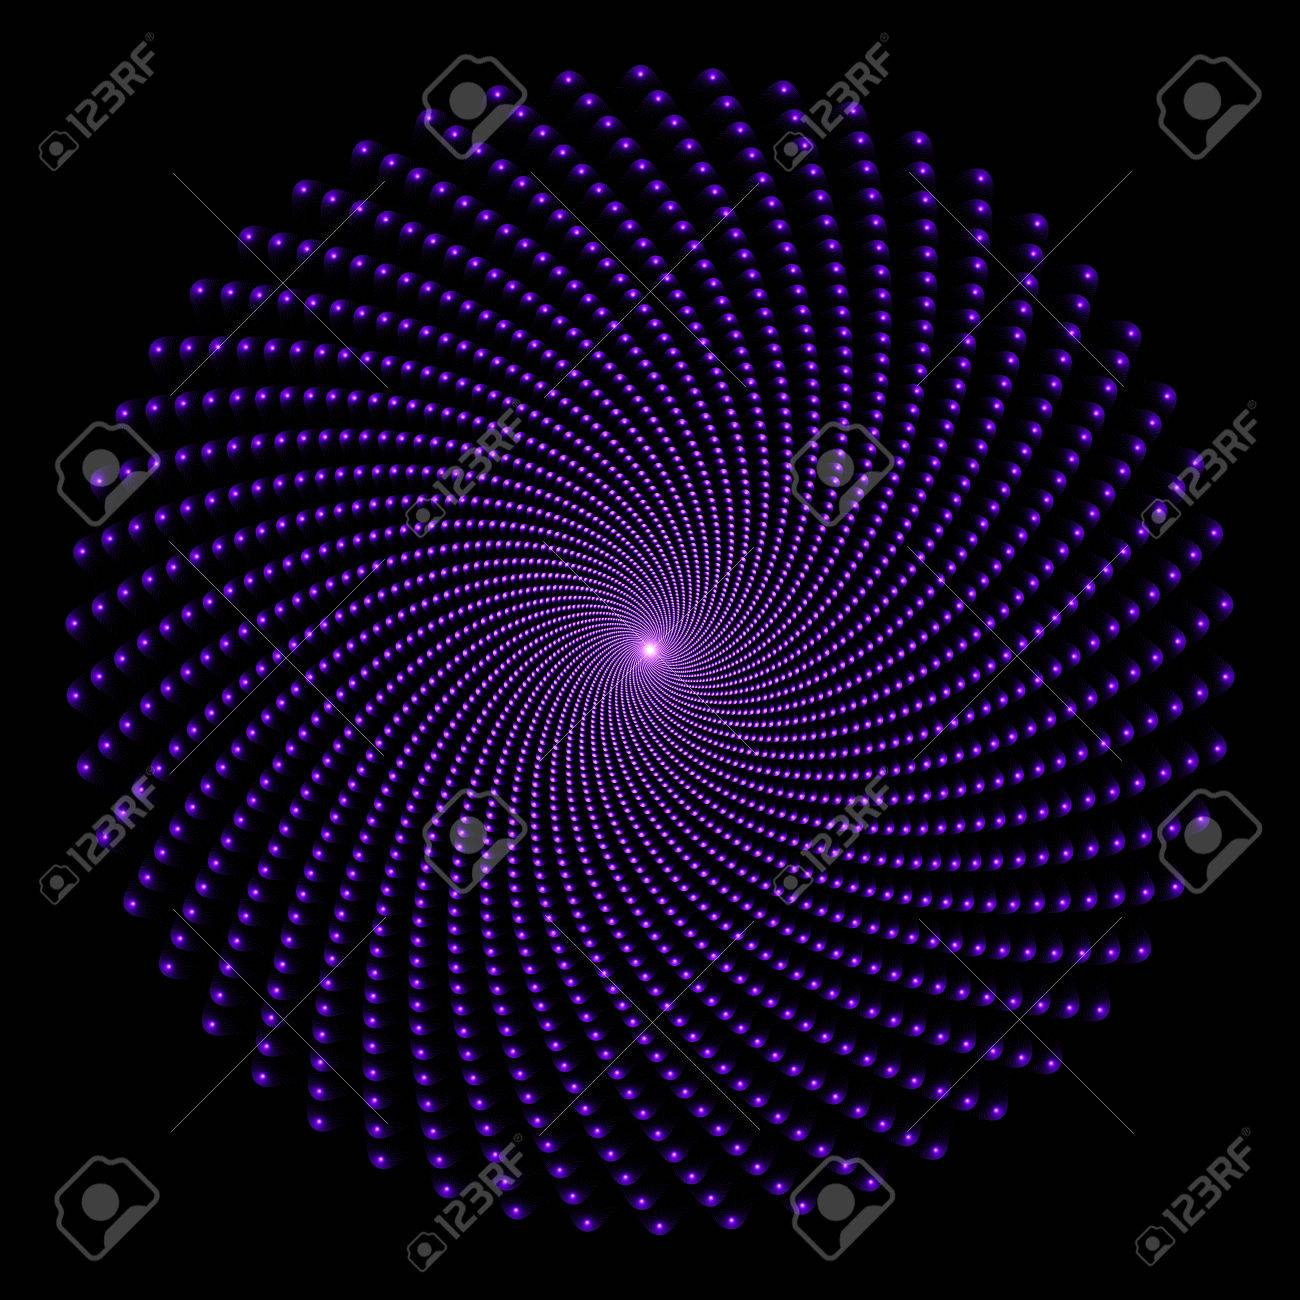 Whirlwind Of Small Circles Converging In A Single Point Abstract